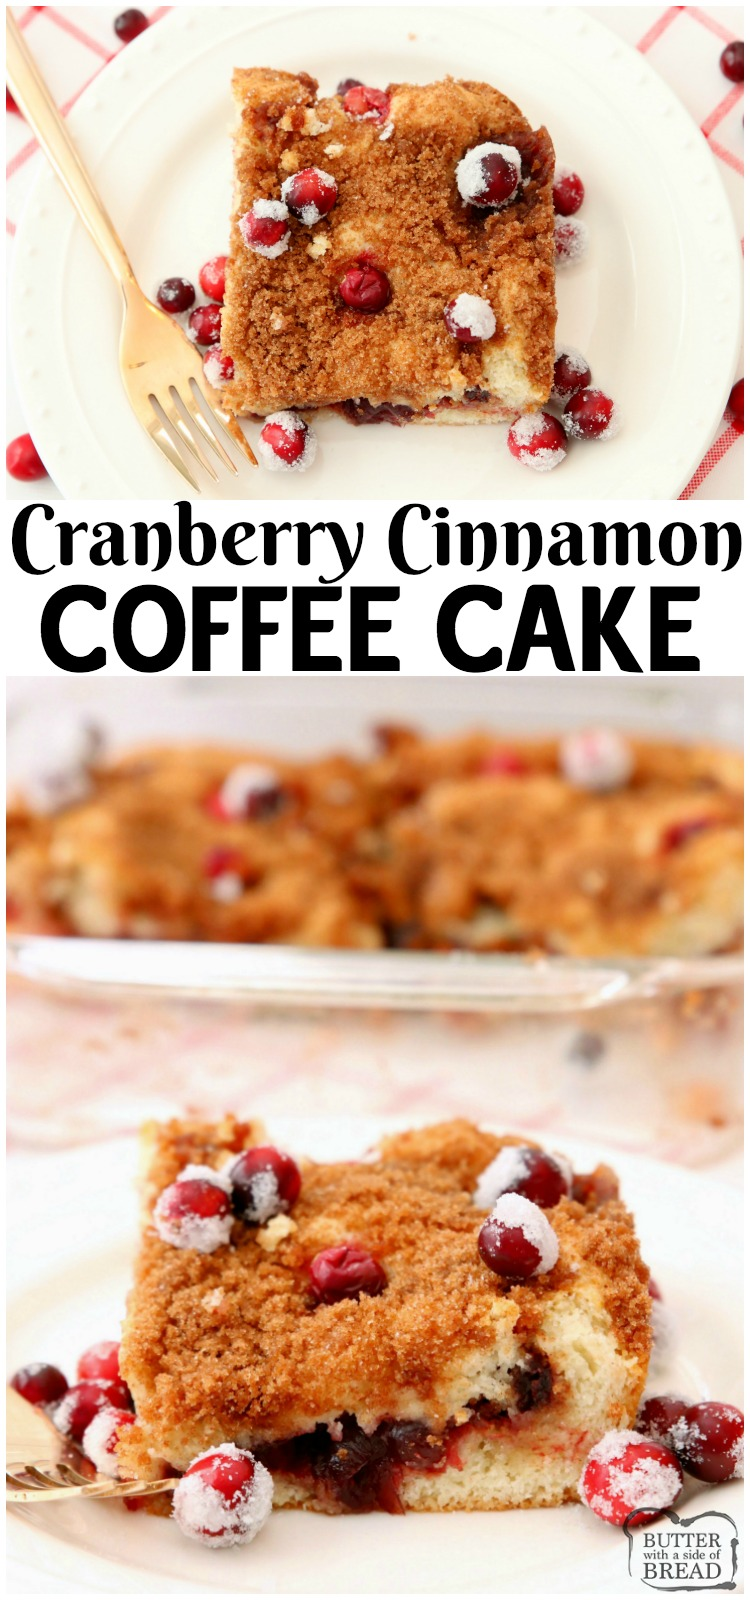 Cranberry Cinnamon Coffee Cake recipe made with just 4 ingredients! Festive & easy coffee cake recipe perfect for holiday breakfasts. #coffeecake #cranberry #cinnamon #baking #breakfast #recipe from BUTTER WITH A SIDE OF BREAD